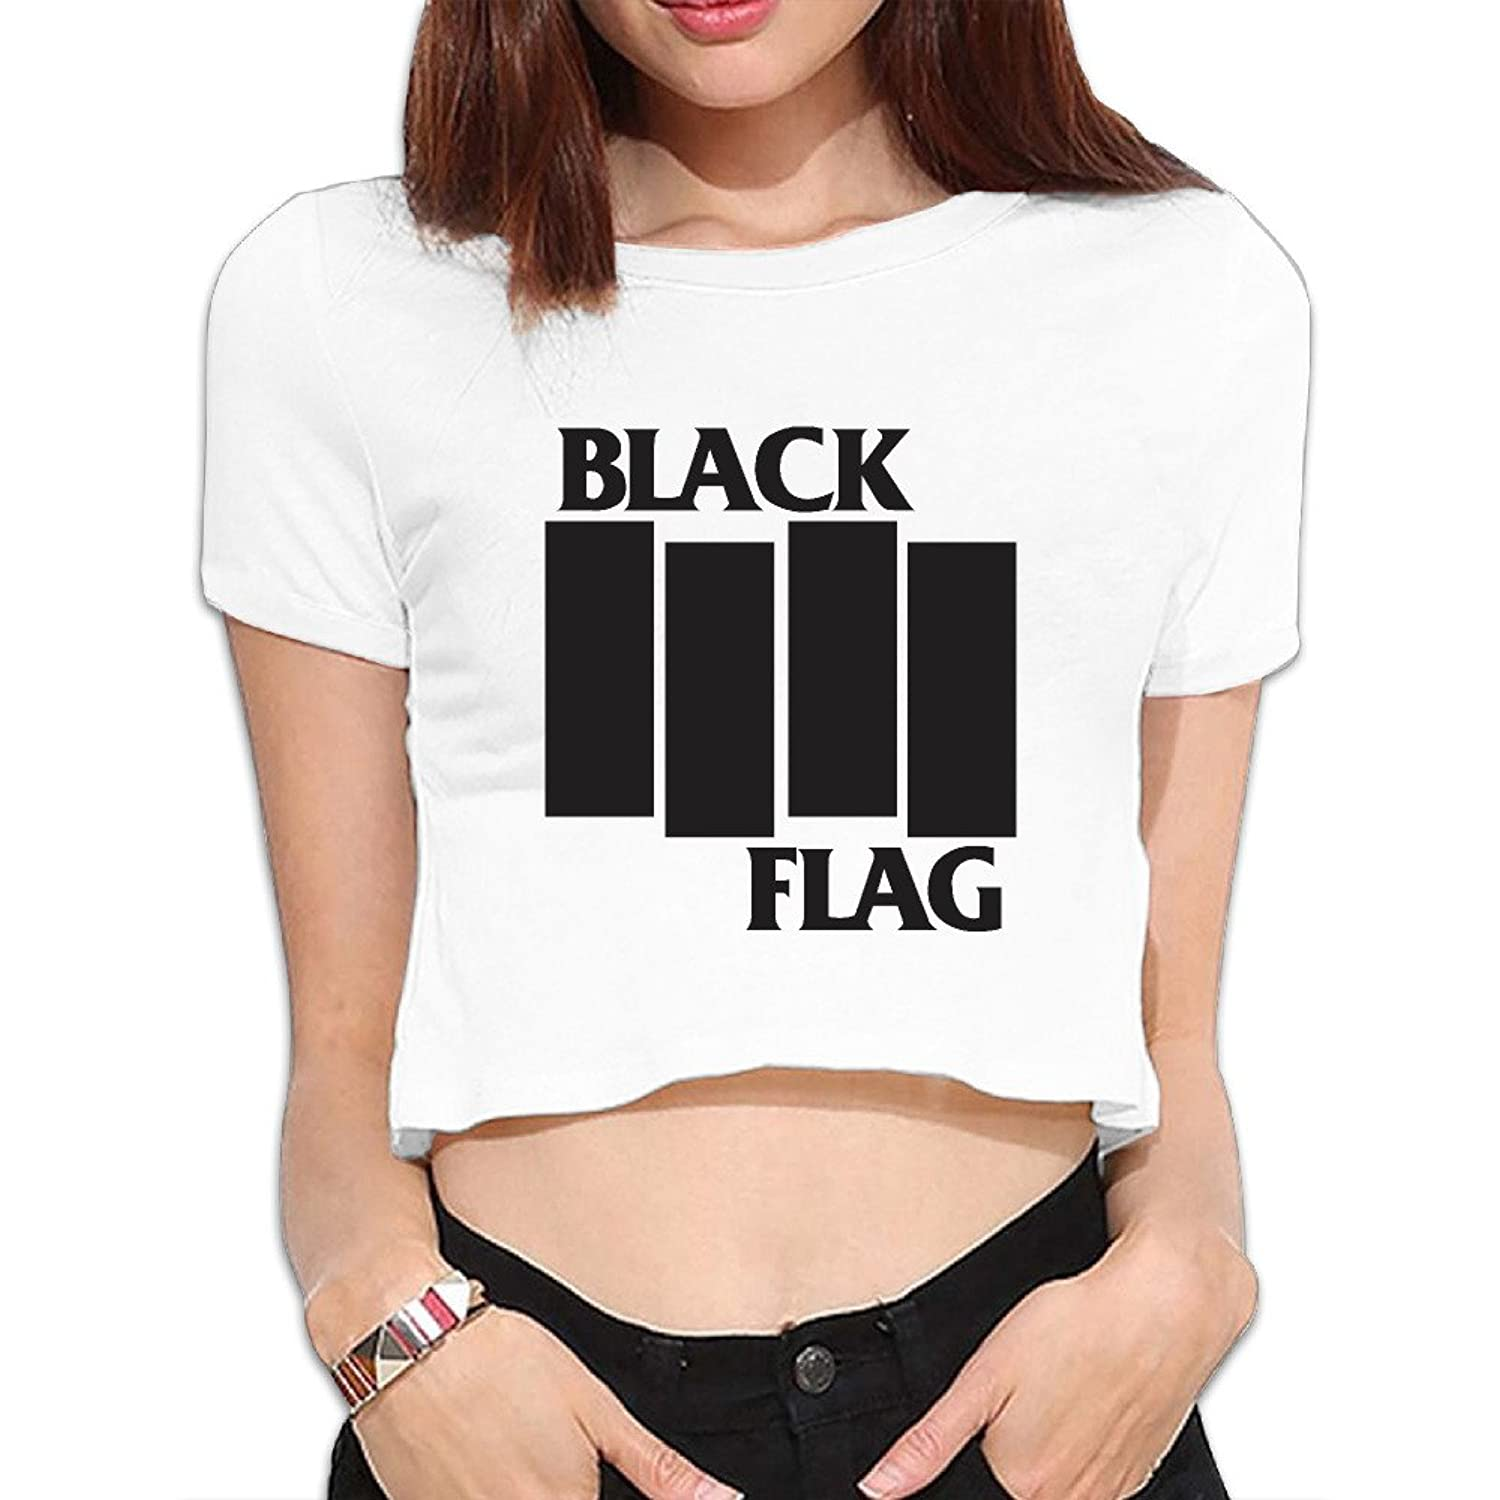 Black flag t shirt europe - The Black Flag Logo Rise Above My War Women S Navel Crop Tops We Carry The Most Update Graphics Inspired By The Latest Trends Excellent Service In Terms Of